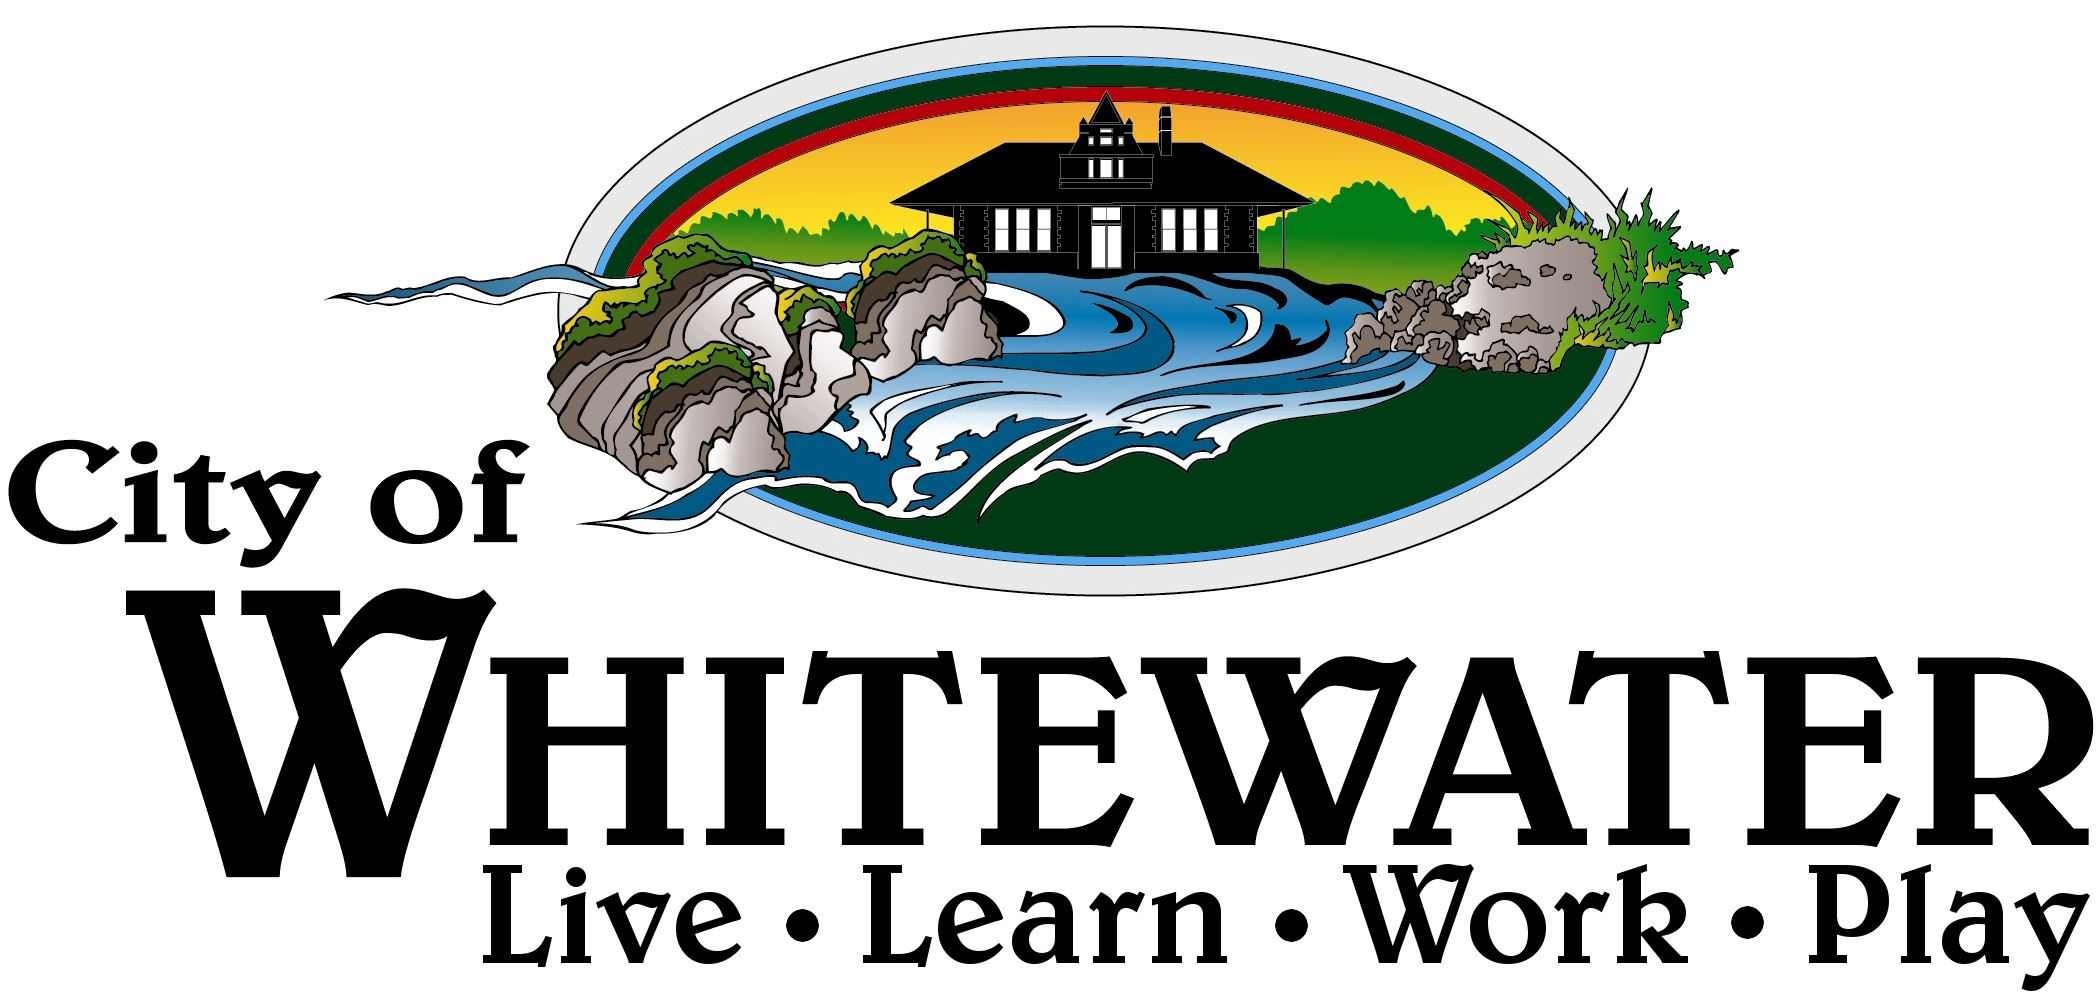 City of Whitewater White Background Live Learn Work Play Cameron Approved More Space